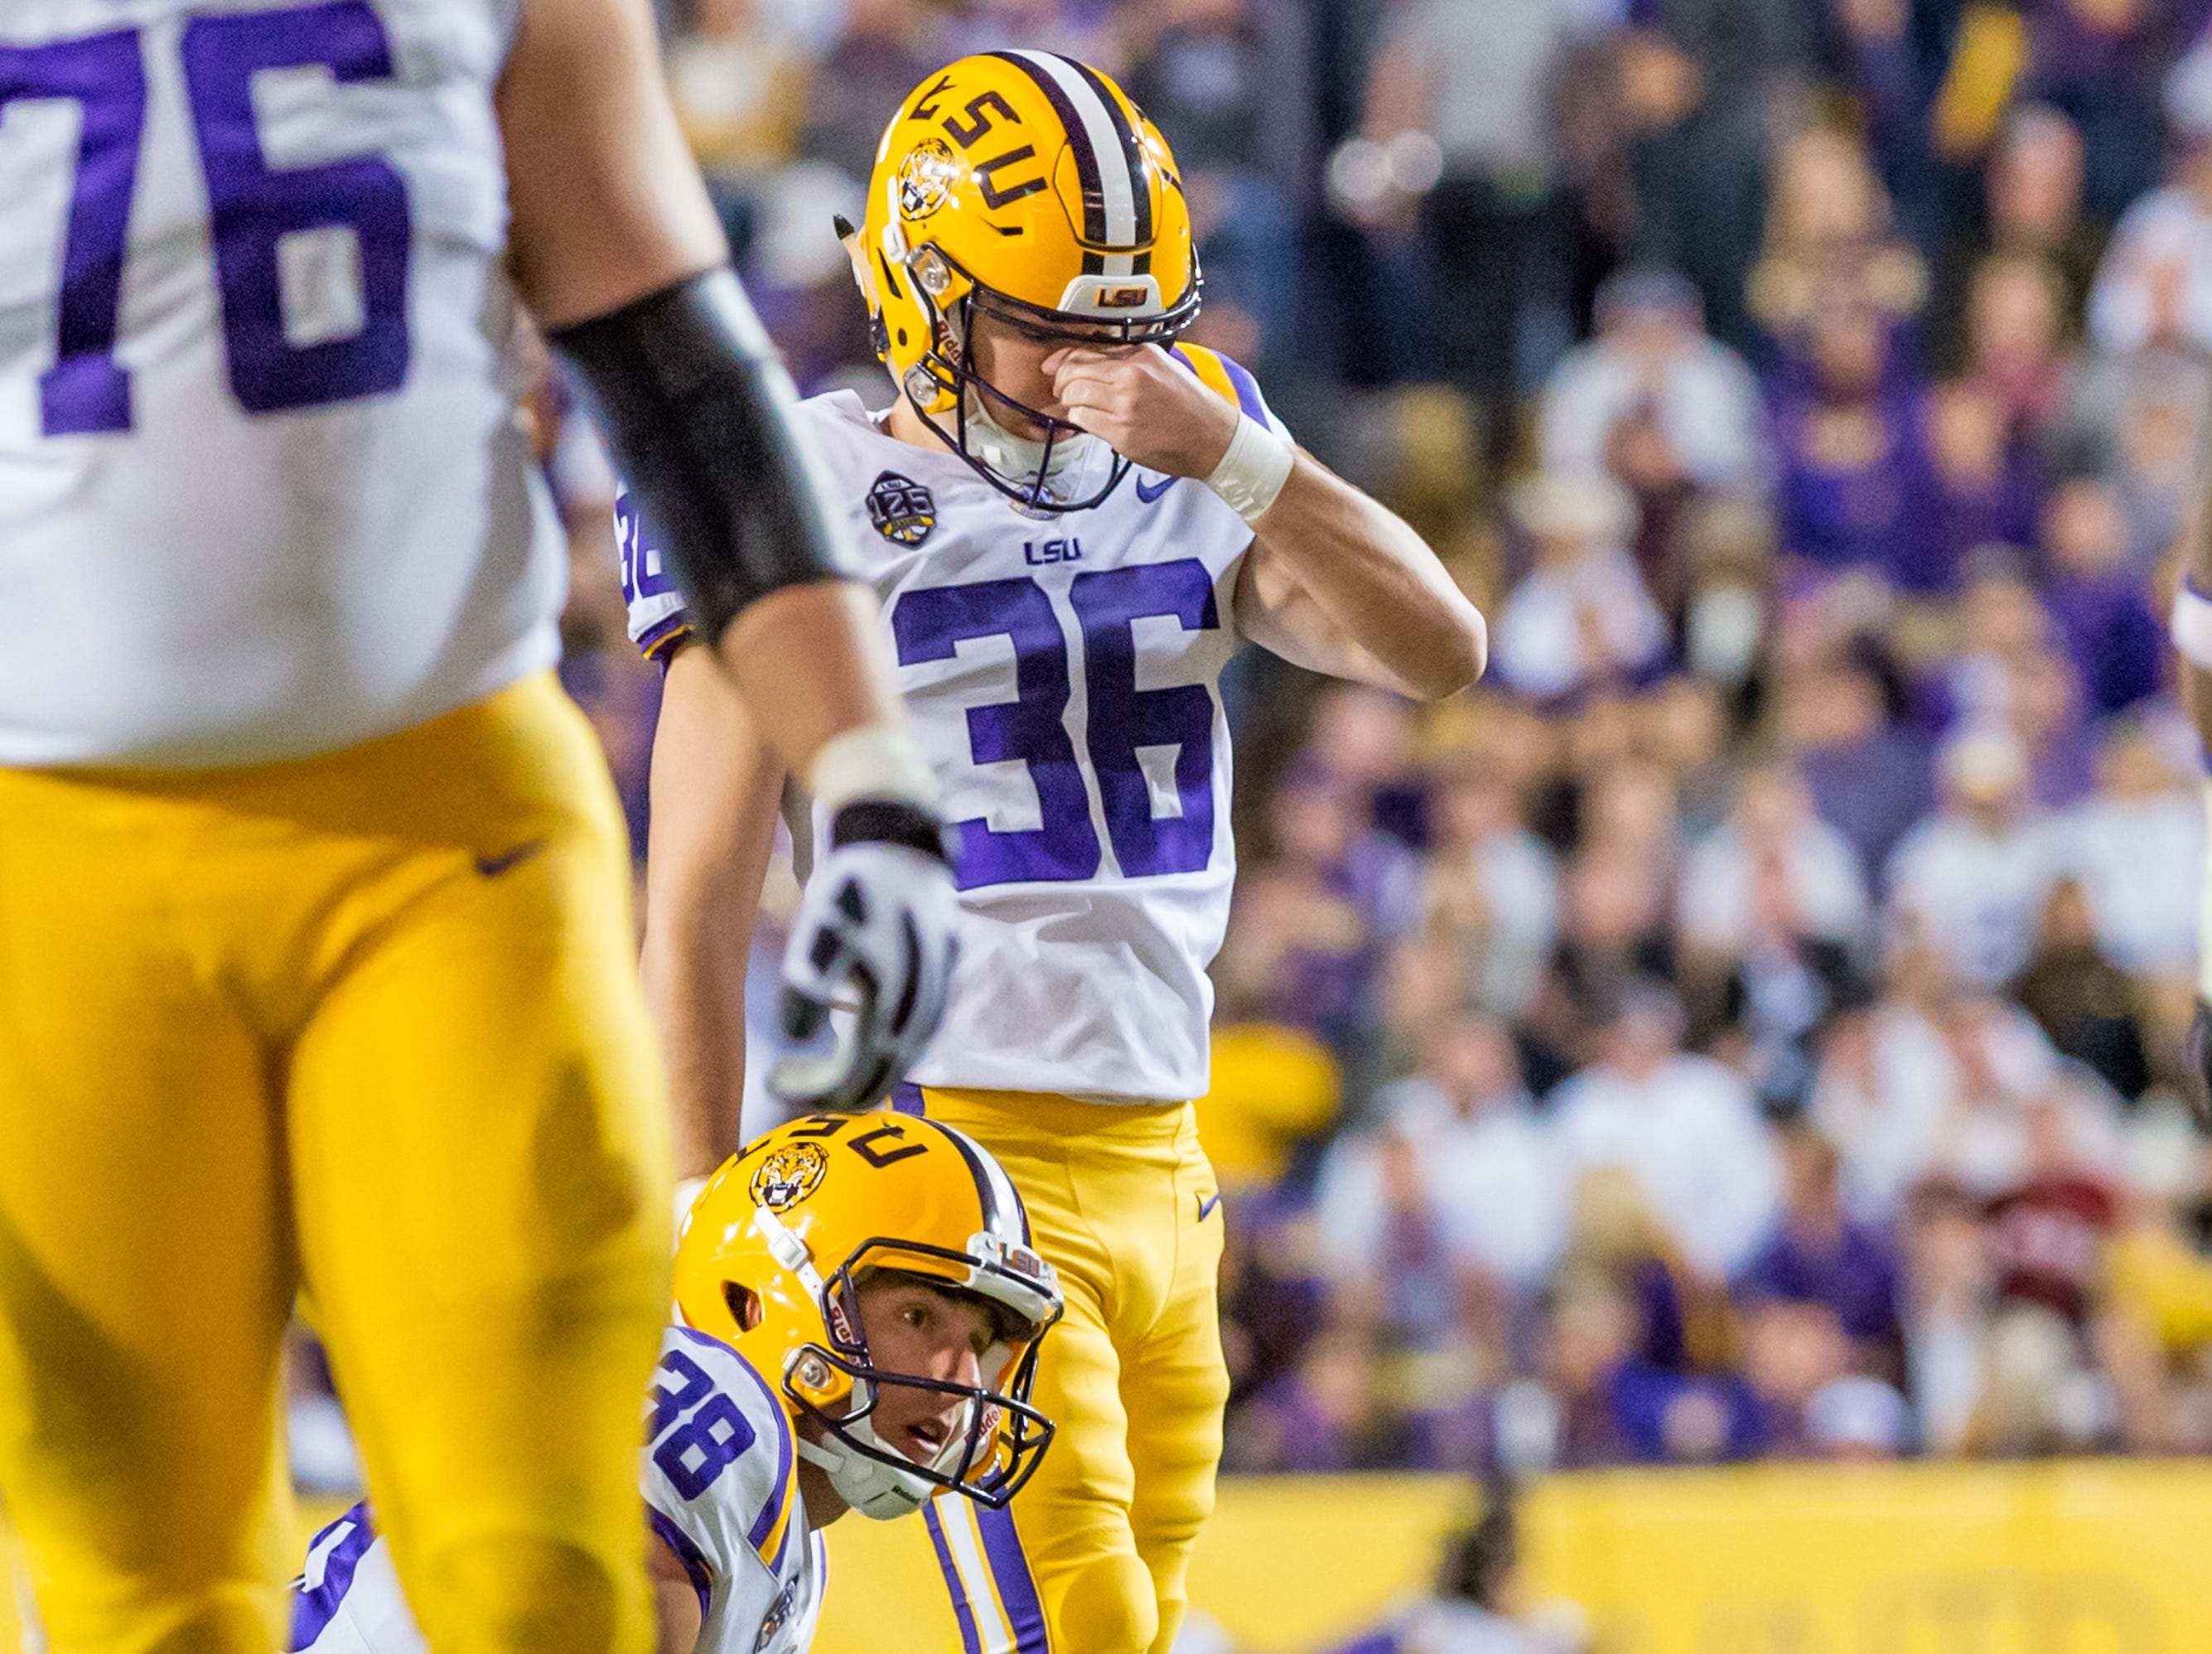 Tigers kicker Cole Tracy reacts after missing a field goal as The #4 LSU Tigers take on the #1 ranked Alabama Crimson Tide in Tiger Stadium. Saturday, Nov. 3, 2018.